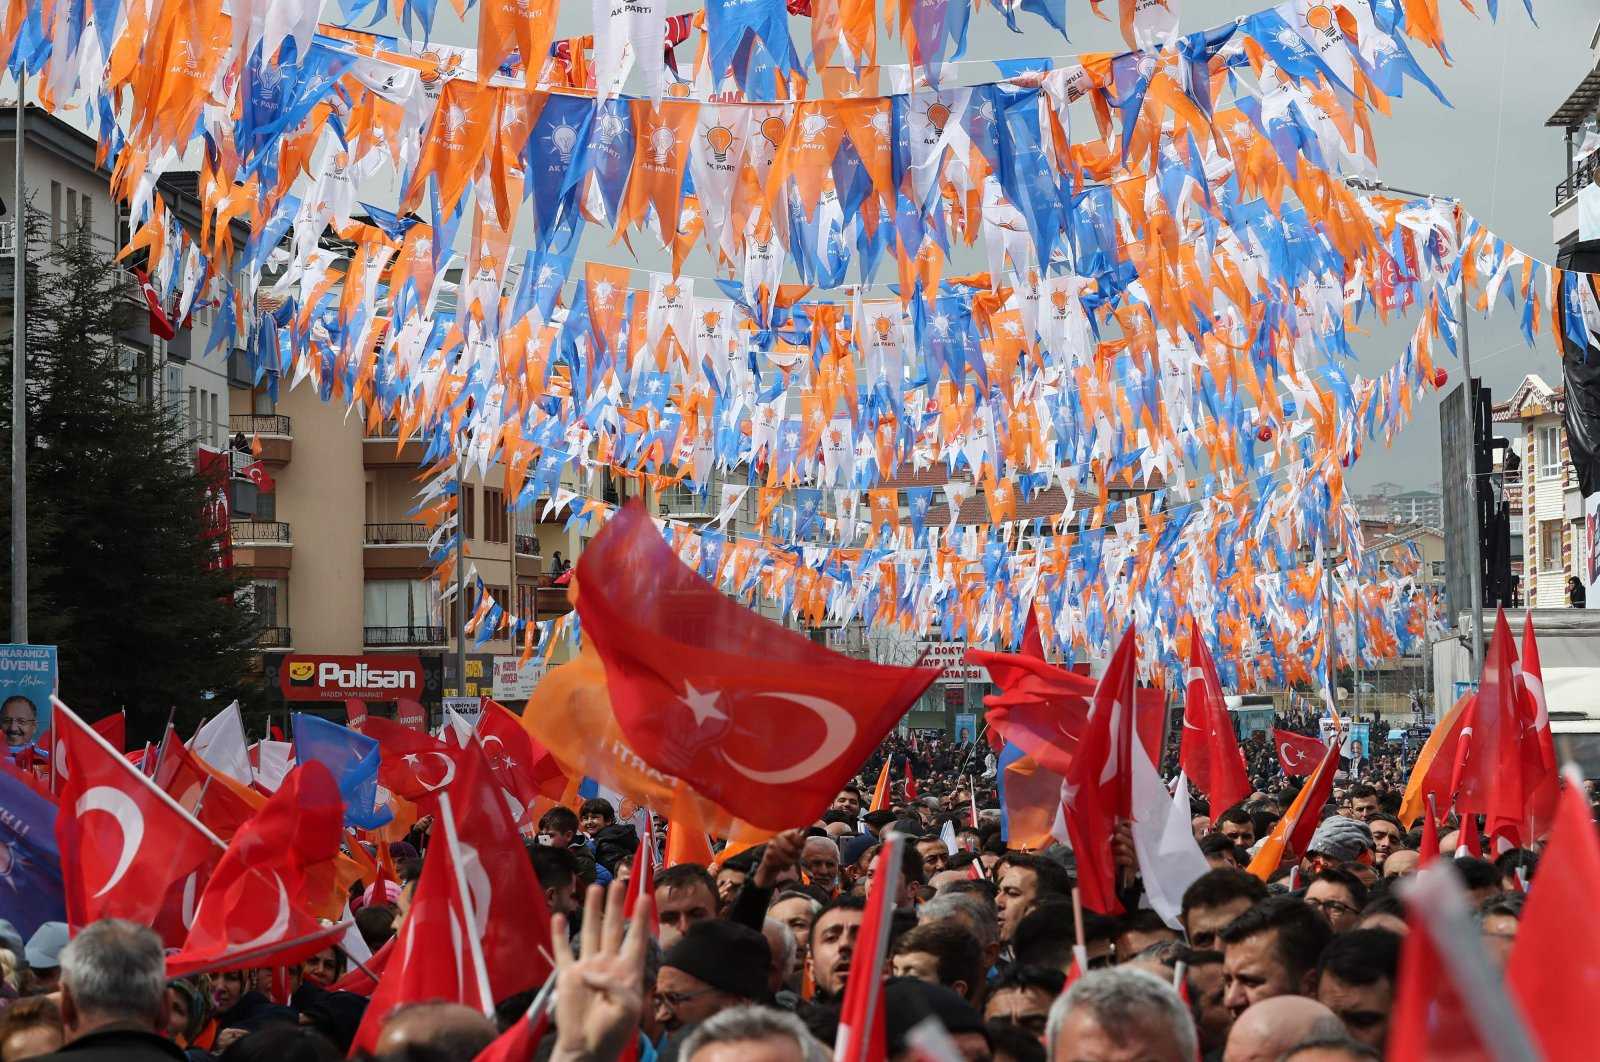 People wave flags as they gather to listen to President Recep Tayyip Erdoğan, the ruling Justice and Development Party's (AK Party) leader, during a party campaign rally in Ankara, Turkey, March 13, 2019. (AFP Photo)